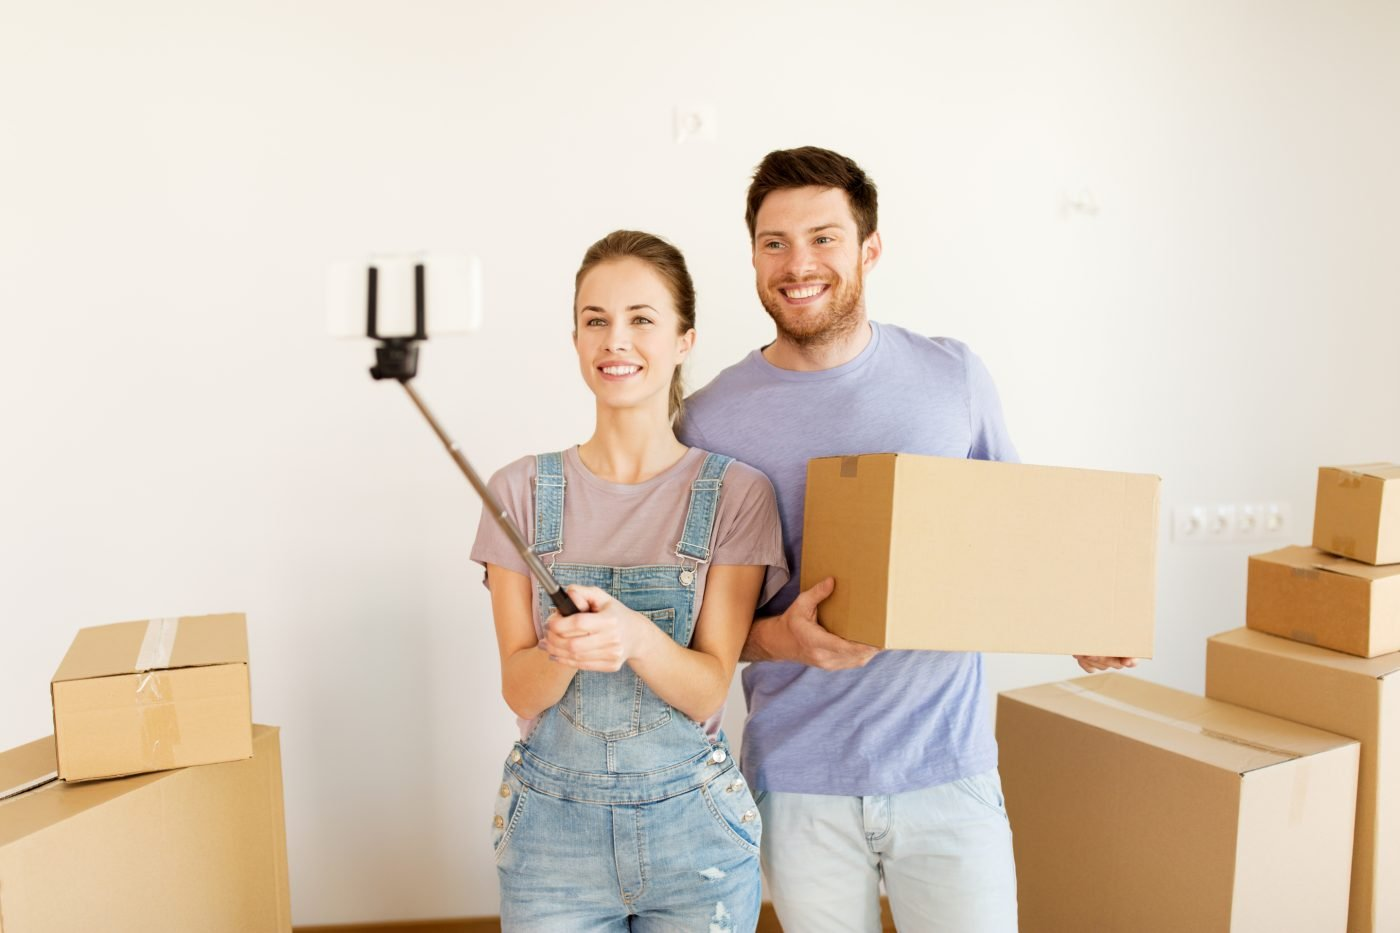 Three Strategies to Have a Less Stressful Relocation - NEDRAC - The #1 Choice for Moving Household Goods